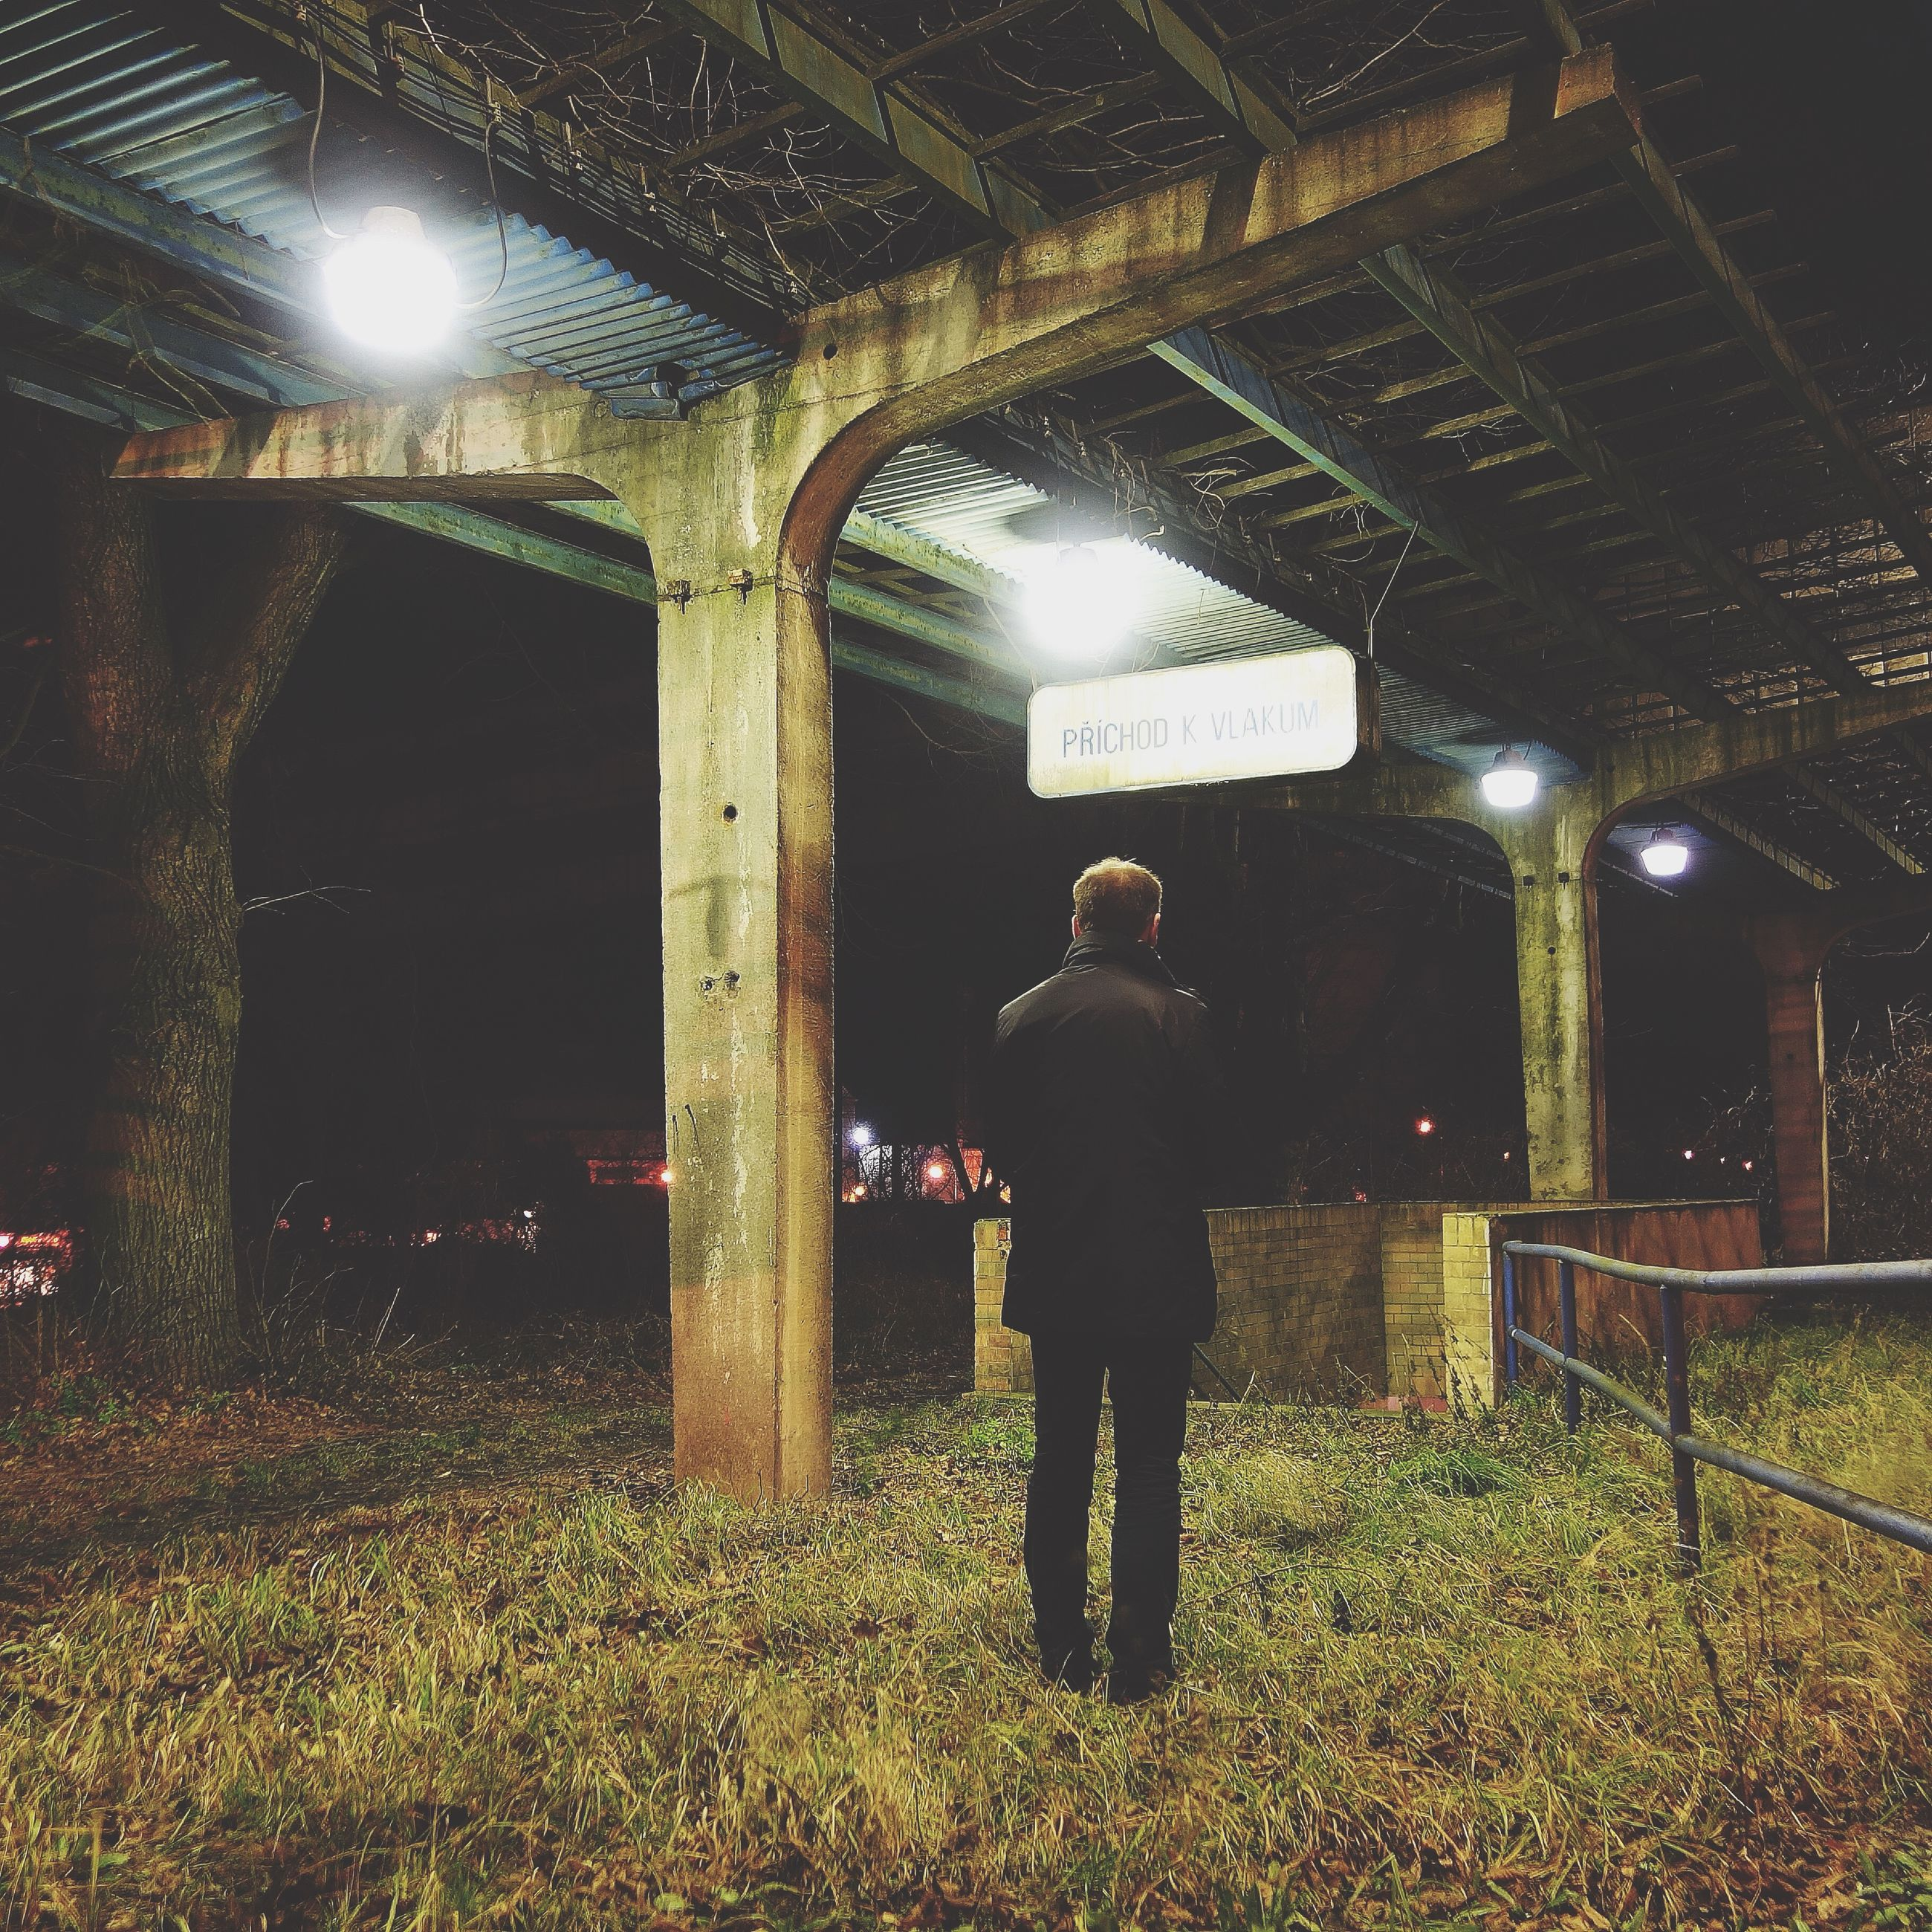 lifestyles, standing, full length, rear view, architecture, leisure activity, casual clothing, built structure, night, illuminated, men, indoors, building exterior, arch, walking, three quarter length, person, grass